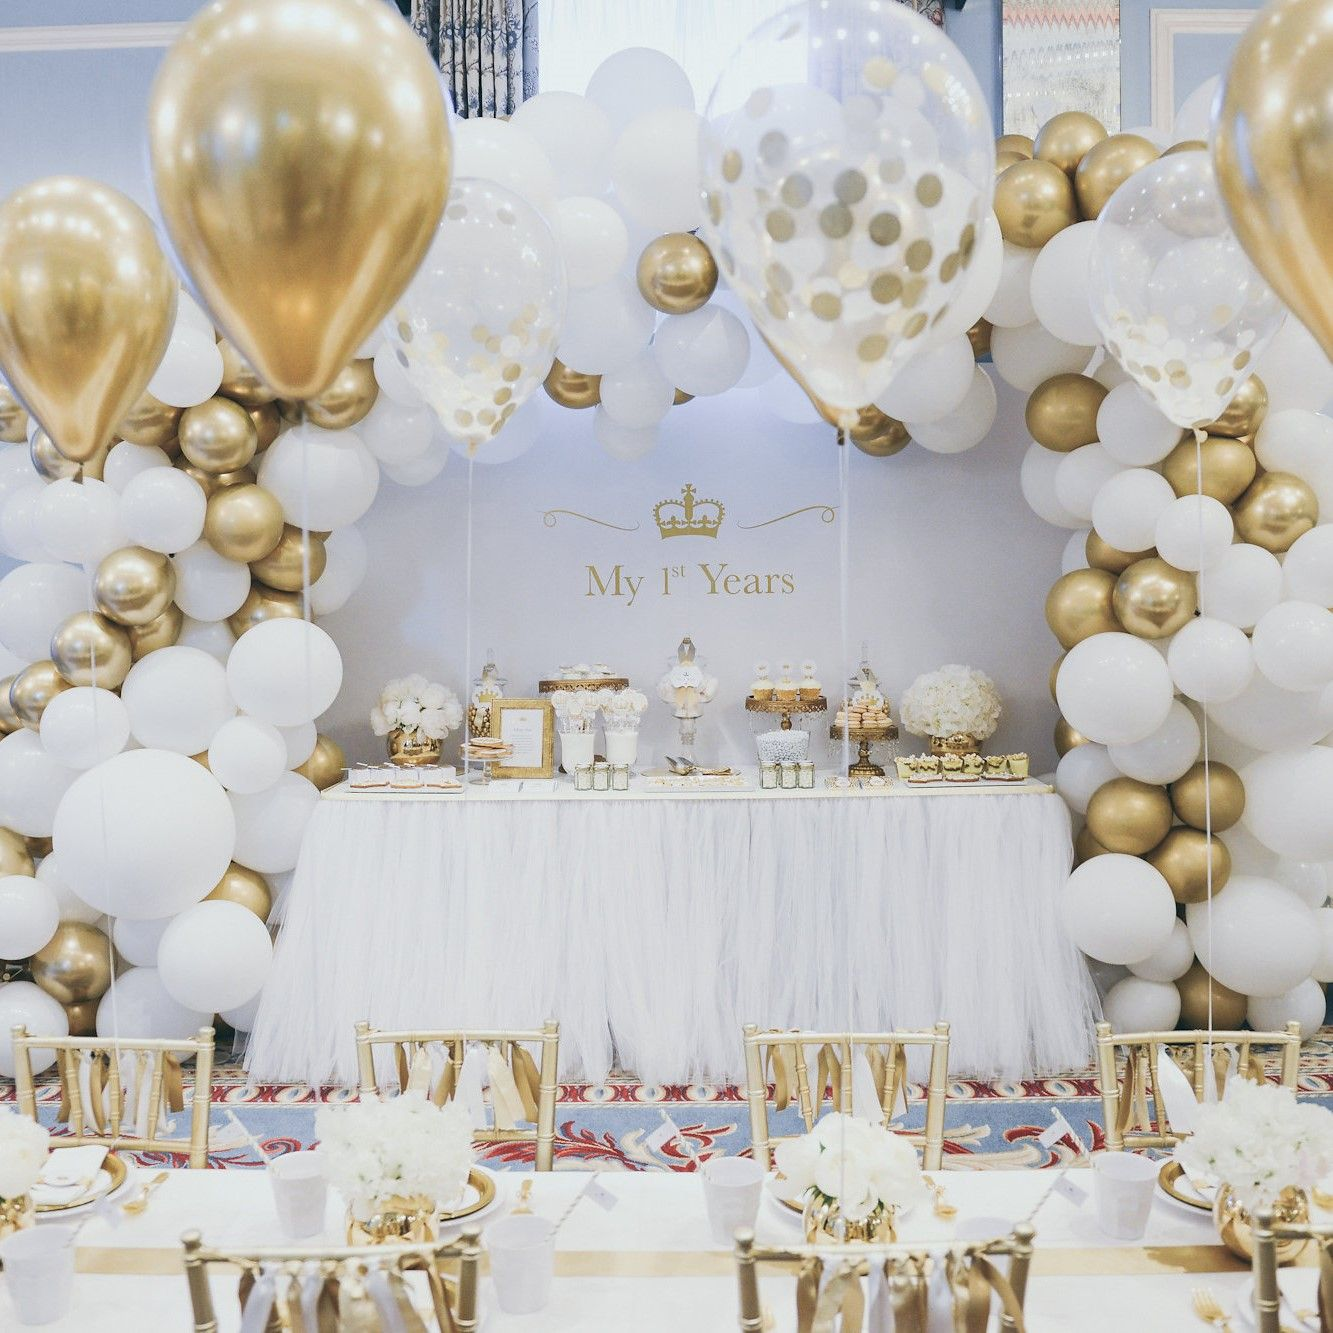 Balloon Arch With Images Gold Theme Party Gold Birthday Party